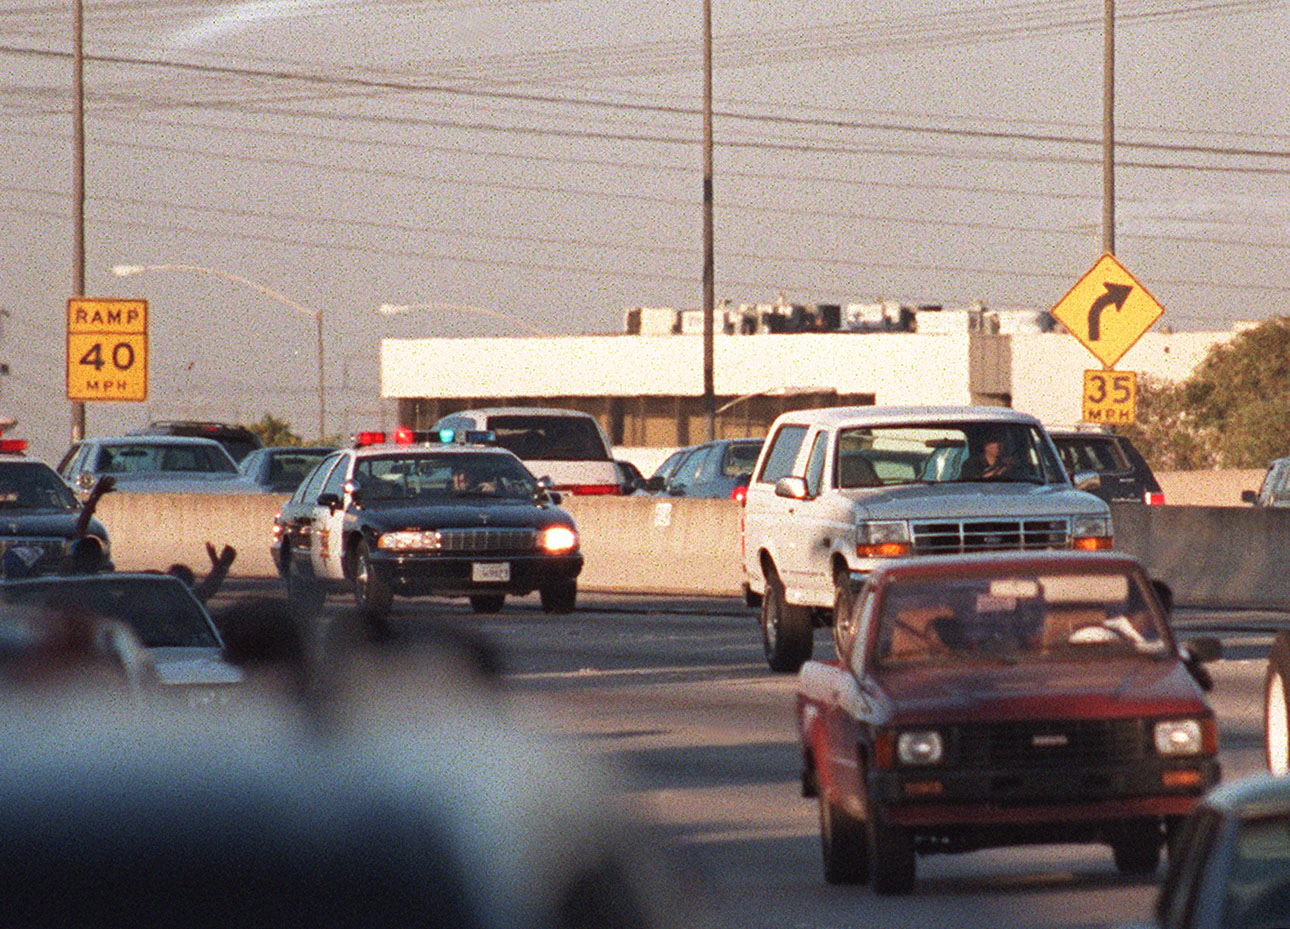 LOS ANGELES - JUNE 17: Motorists wave as police cars pursue the Ford Bronco (white, R) driven by Al Cowlings, carrying fugitive murder suspect O.J. Simpson, on a 90-minute slow-speed car chase June 17, 1994 on the 405 freeway in Los Angeles, California. Simpson's friend Cowlings eventually drove Simpson home, with Simpson ducked under the back passenger seat, to Brentwood where he surrendered after a stand-off with police.